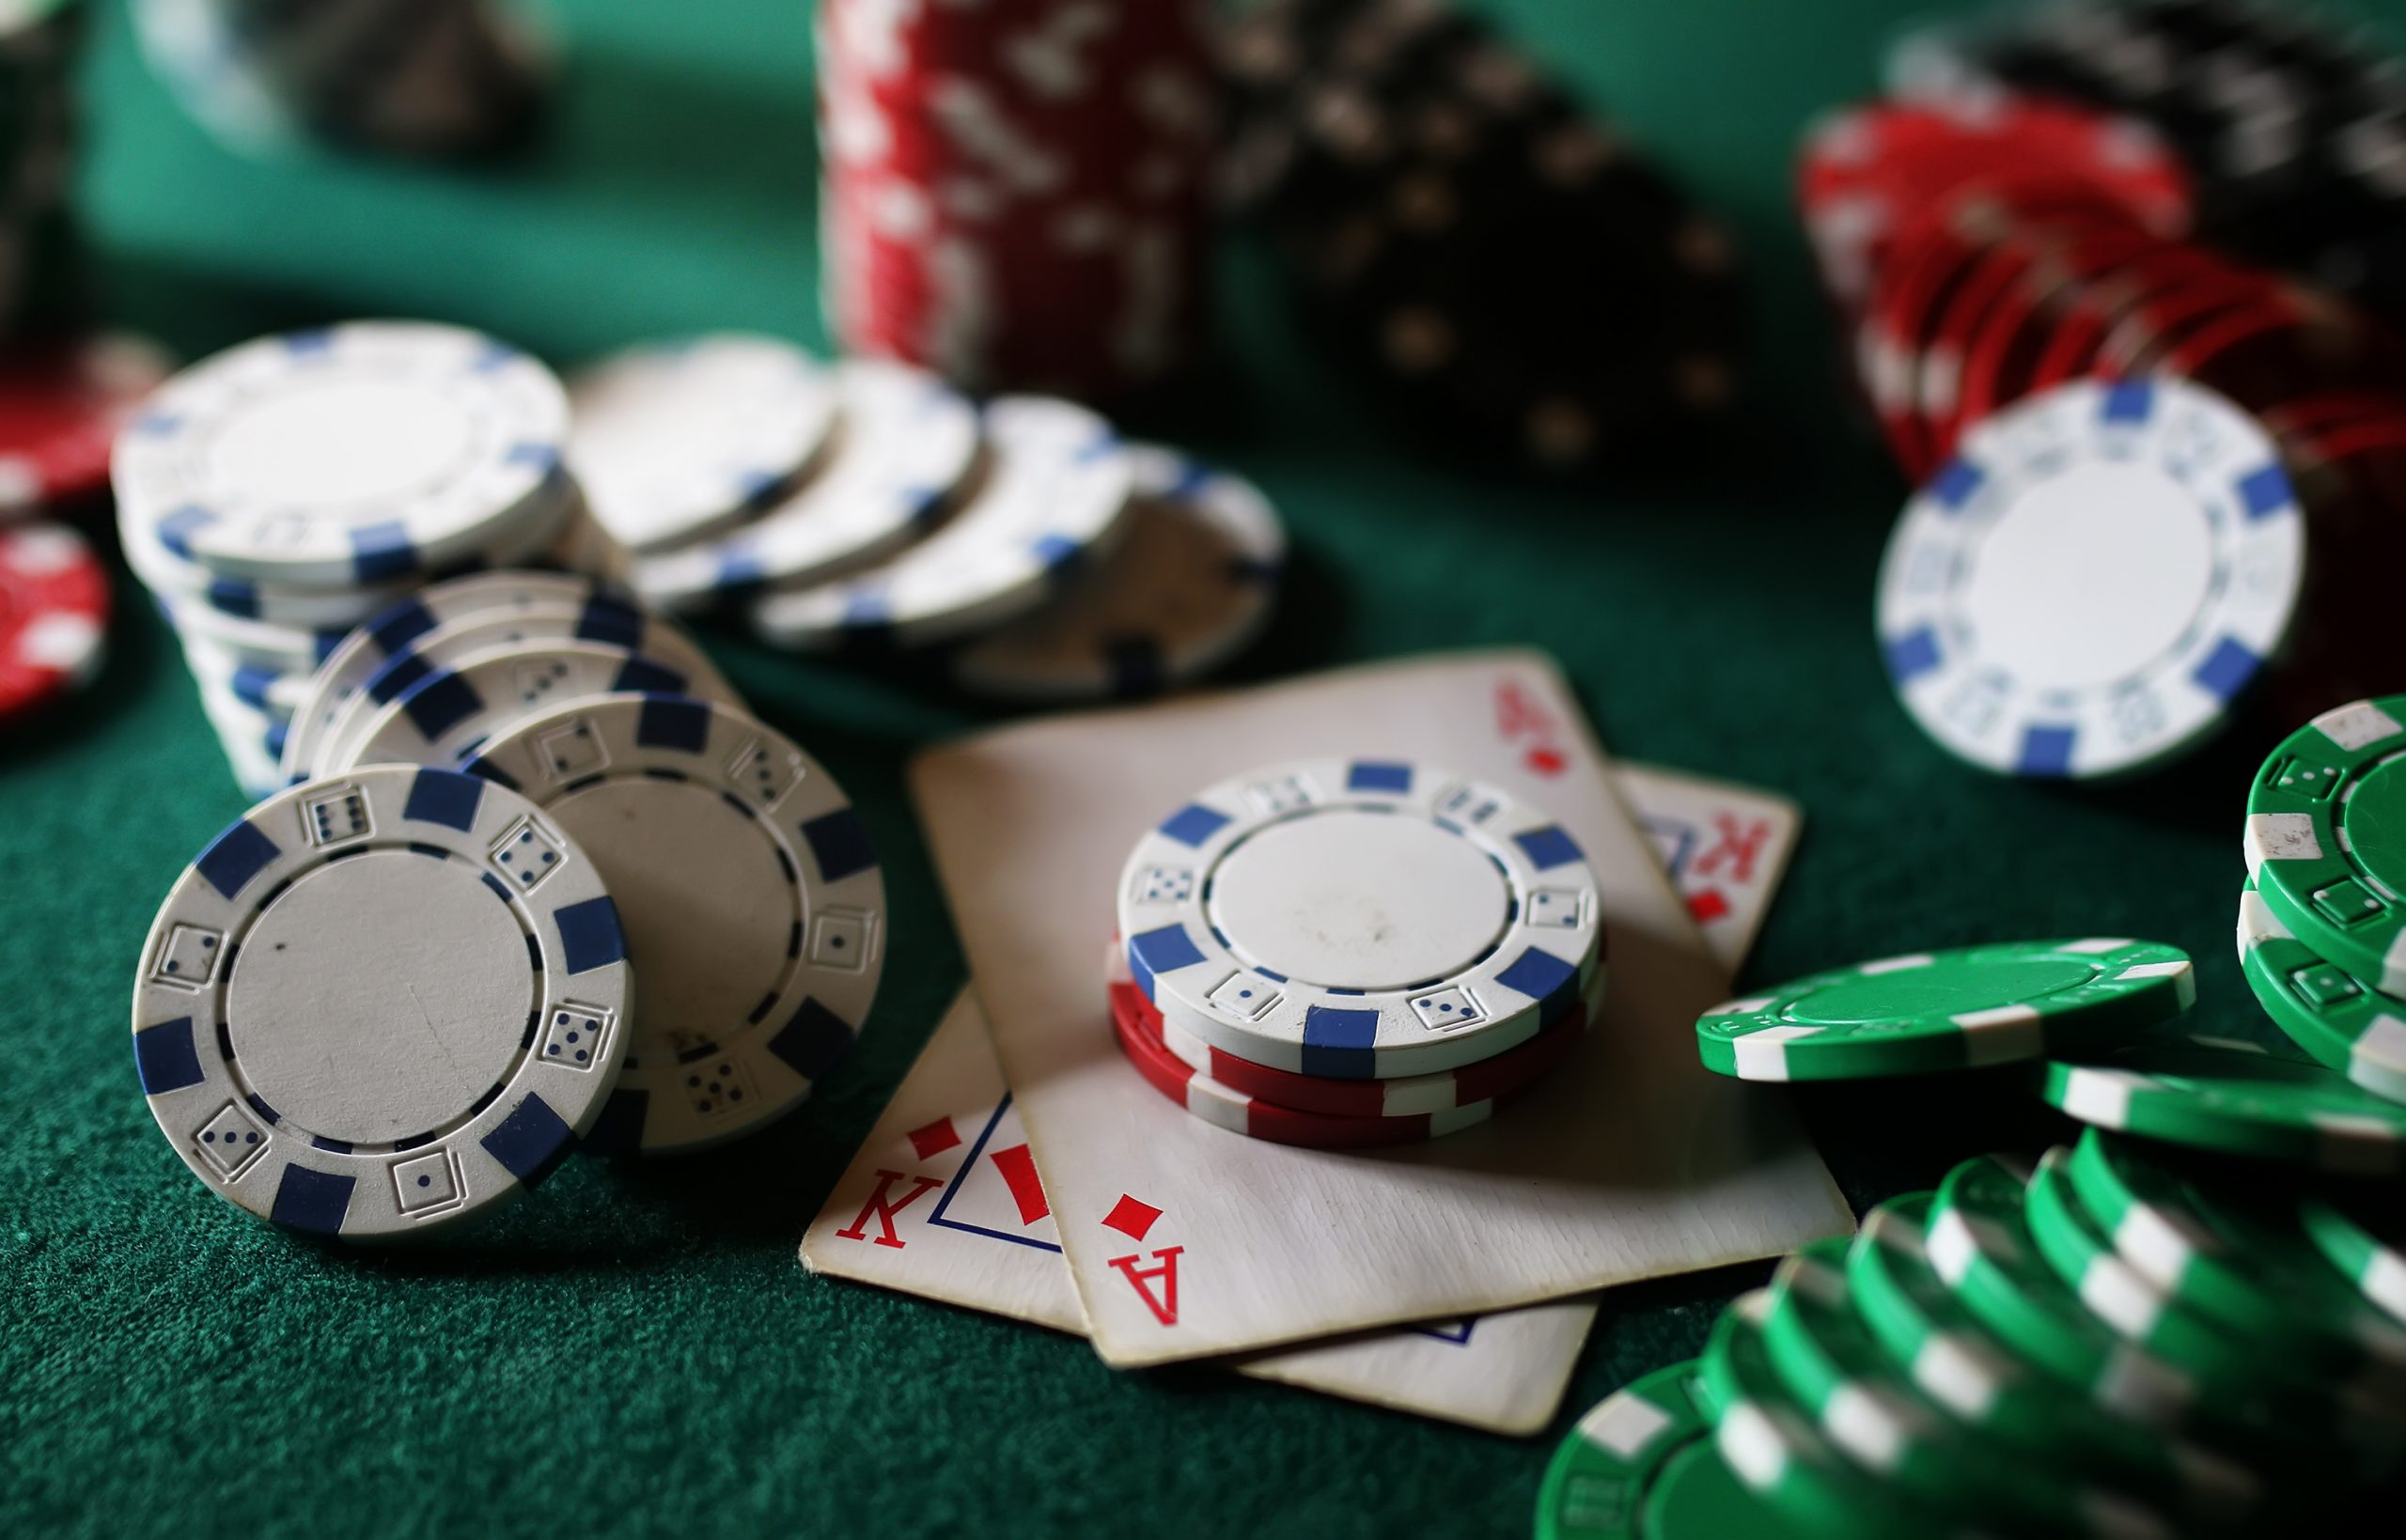 Calculate Payout Ratio Gambling – Check the options